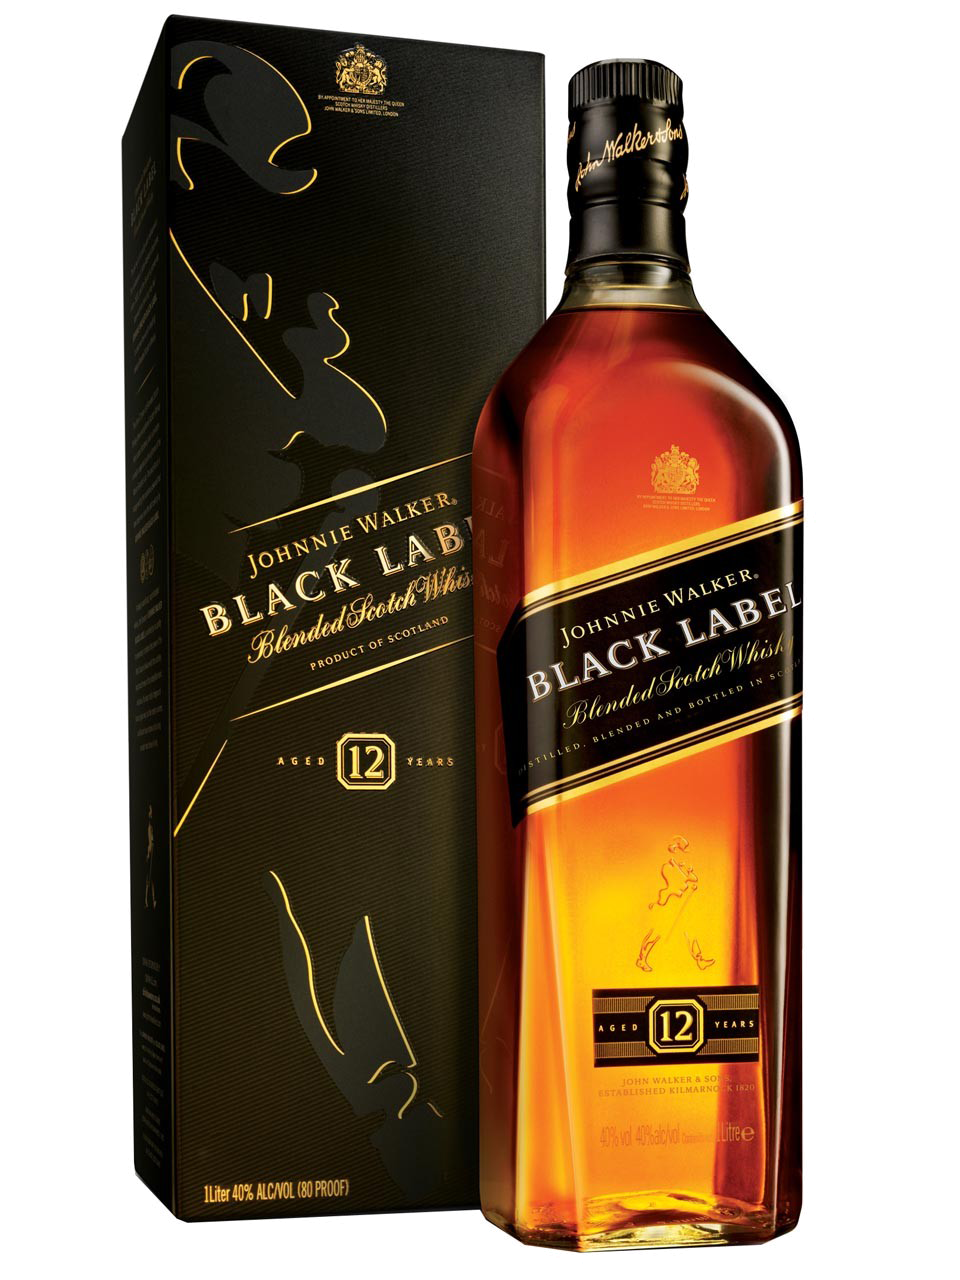 Black label png. Heinemann duty free travel